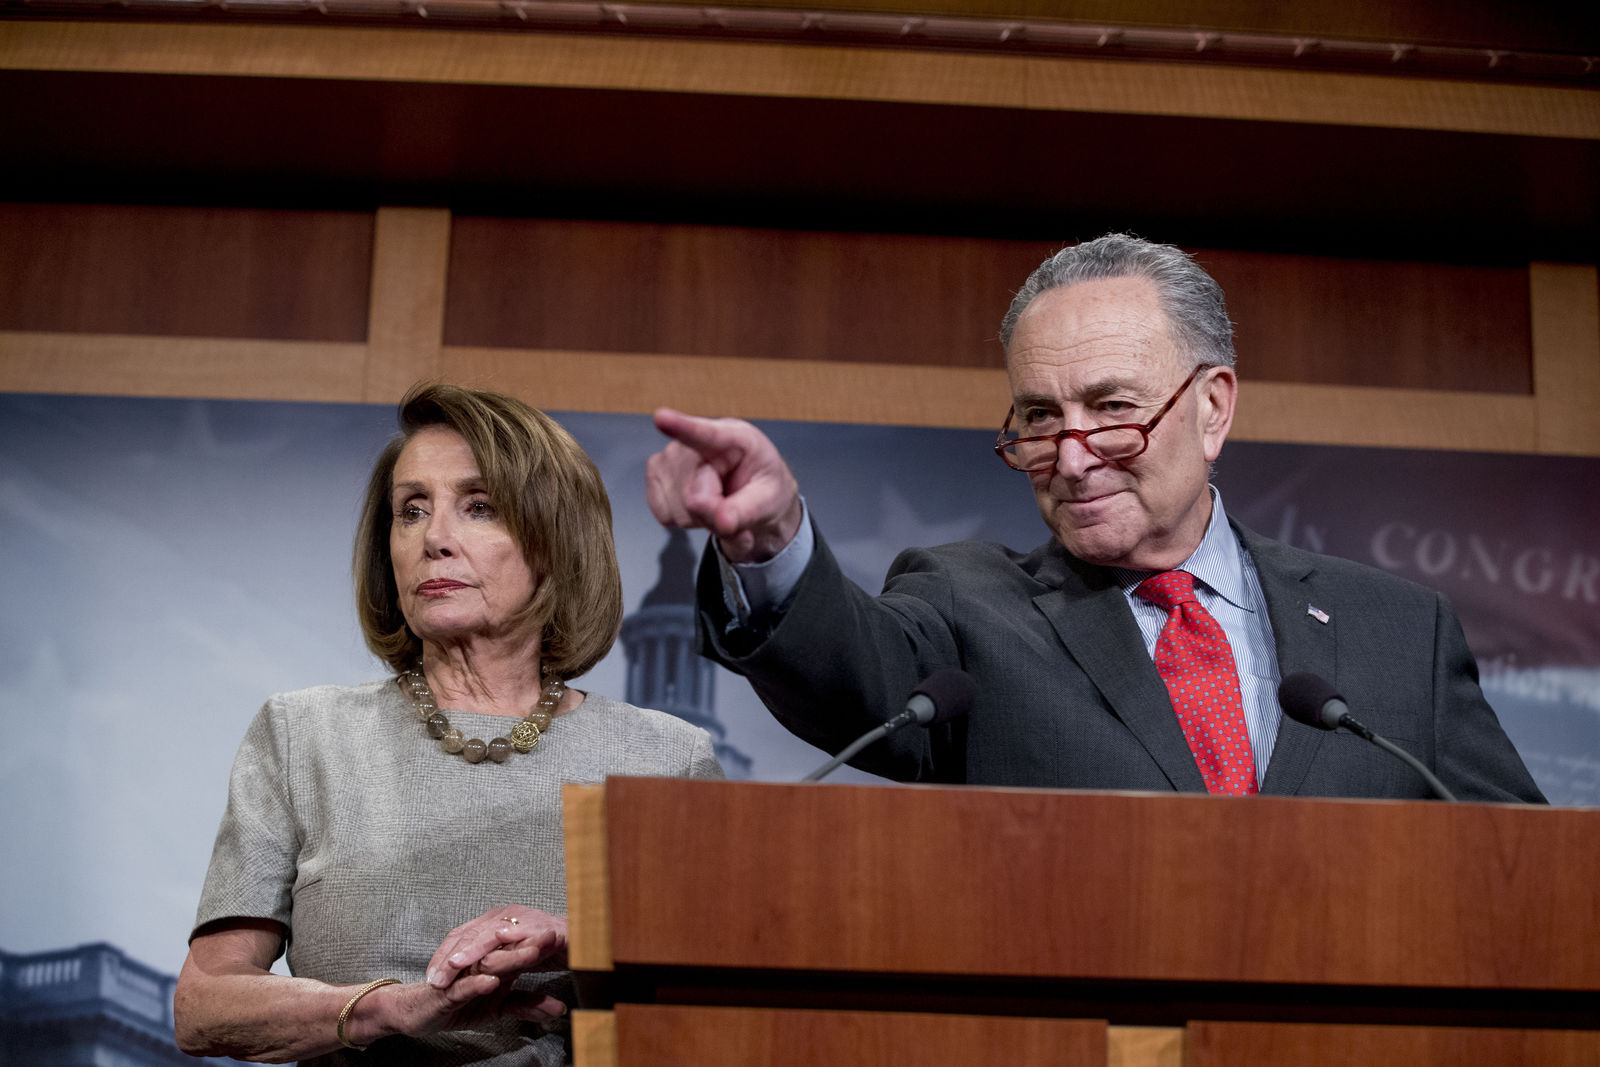 Senate Minority Leader Sen. Chuck Schumer of N.Y., accompanied by Speaker Nancy Pelosi of Calif., left, calls on a reporter during a news conference on Capitol Hill in Washington, Friday, Jan. 25. (AP Photo/Andrew Harnik)